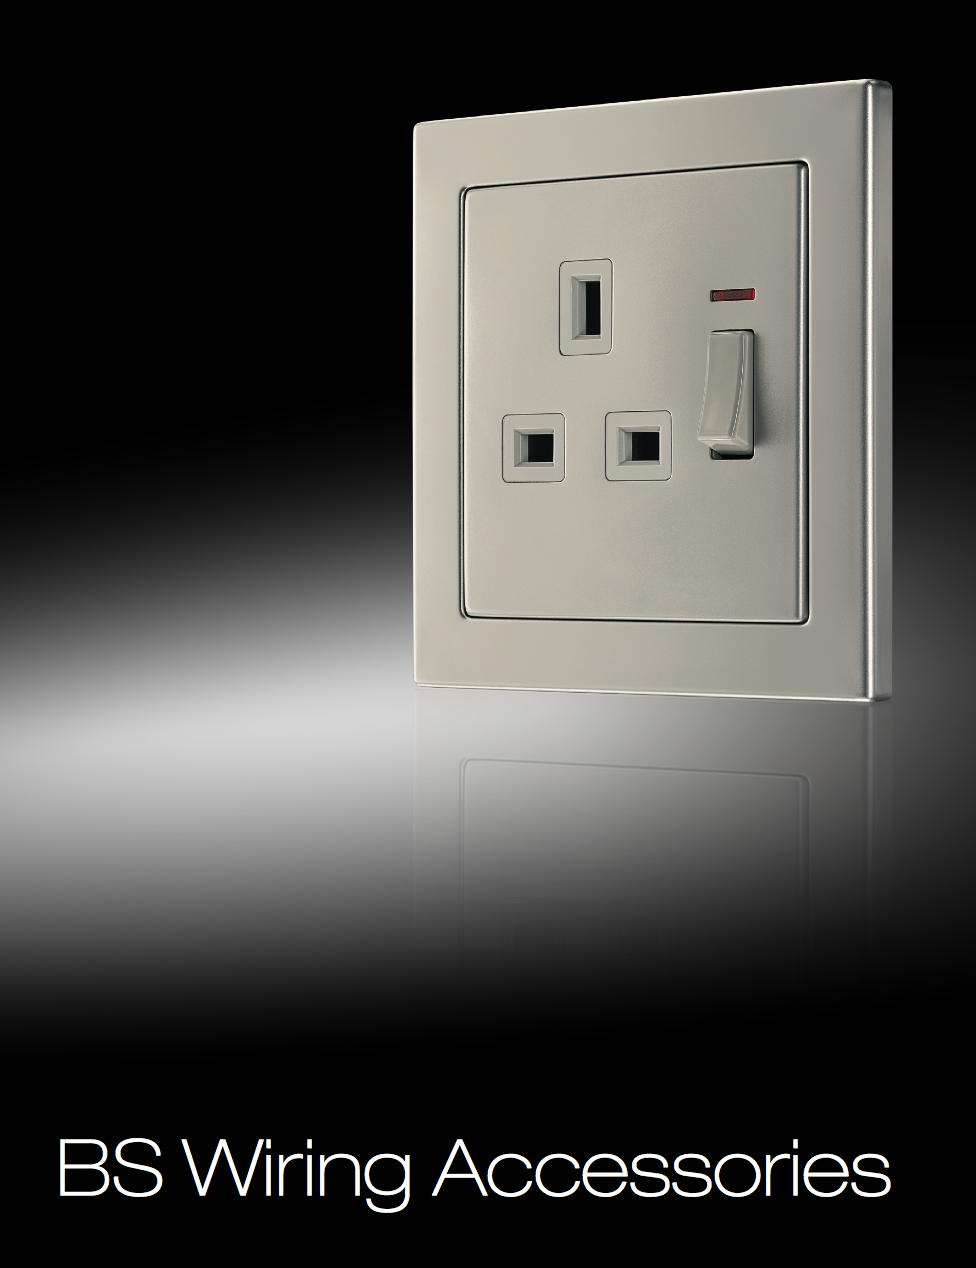 hight resolution of  touch control design switches home control system home automation luxury home for interiors and architectures projects smart home homeautomation